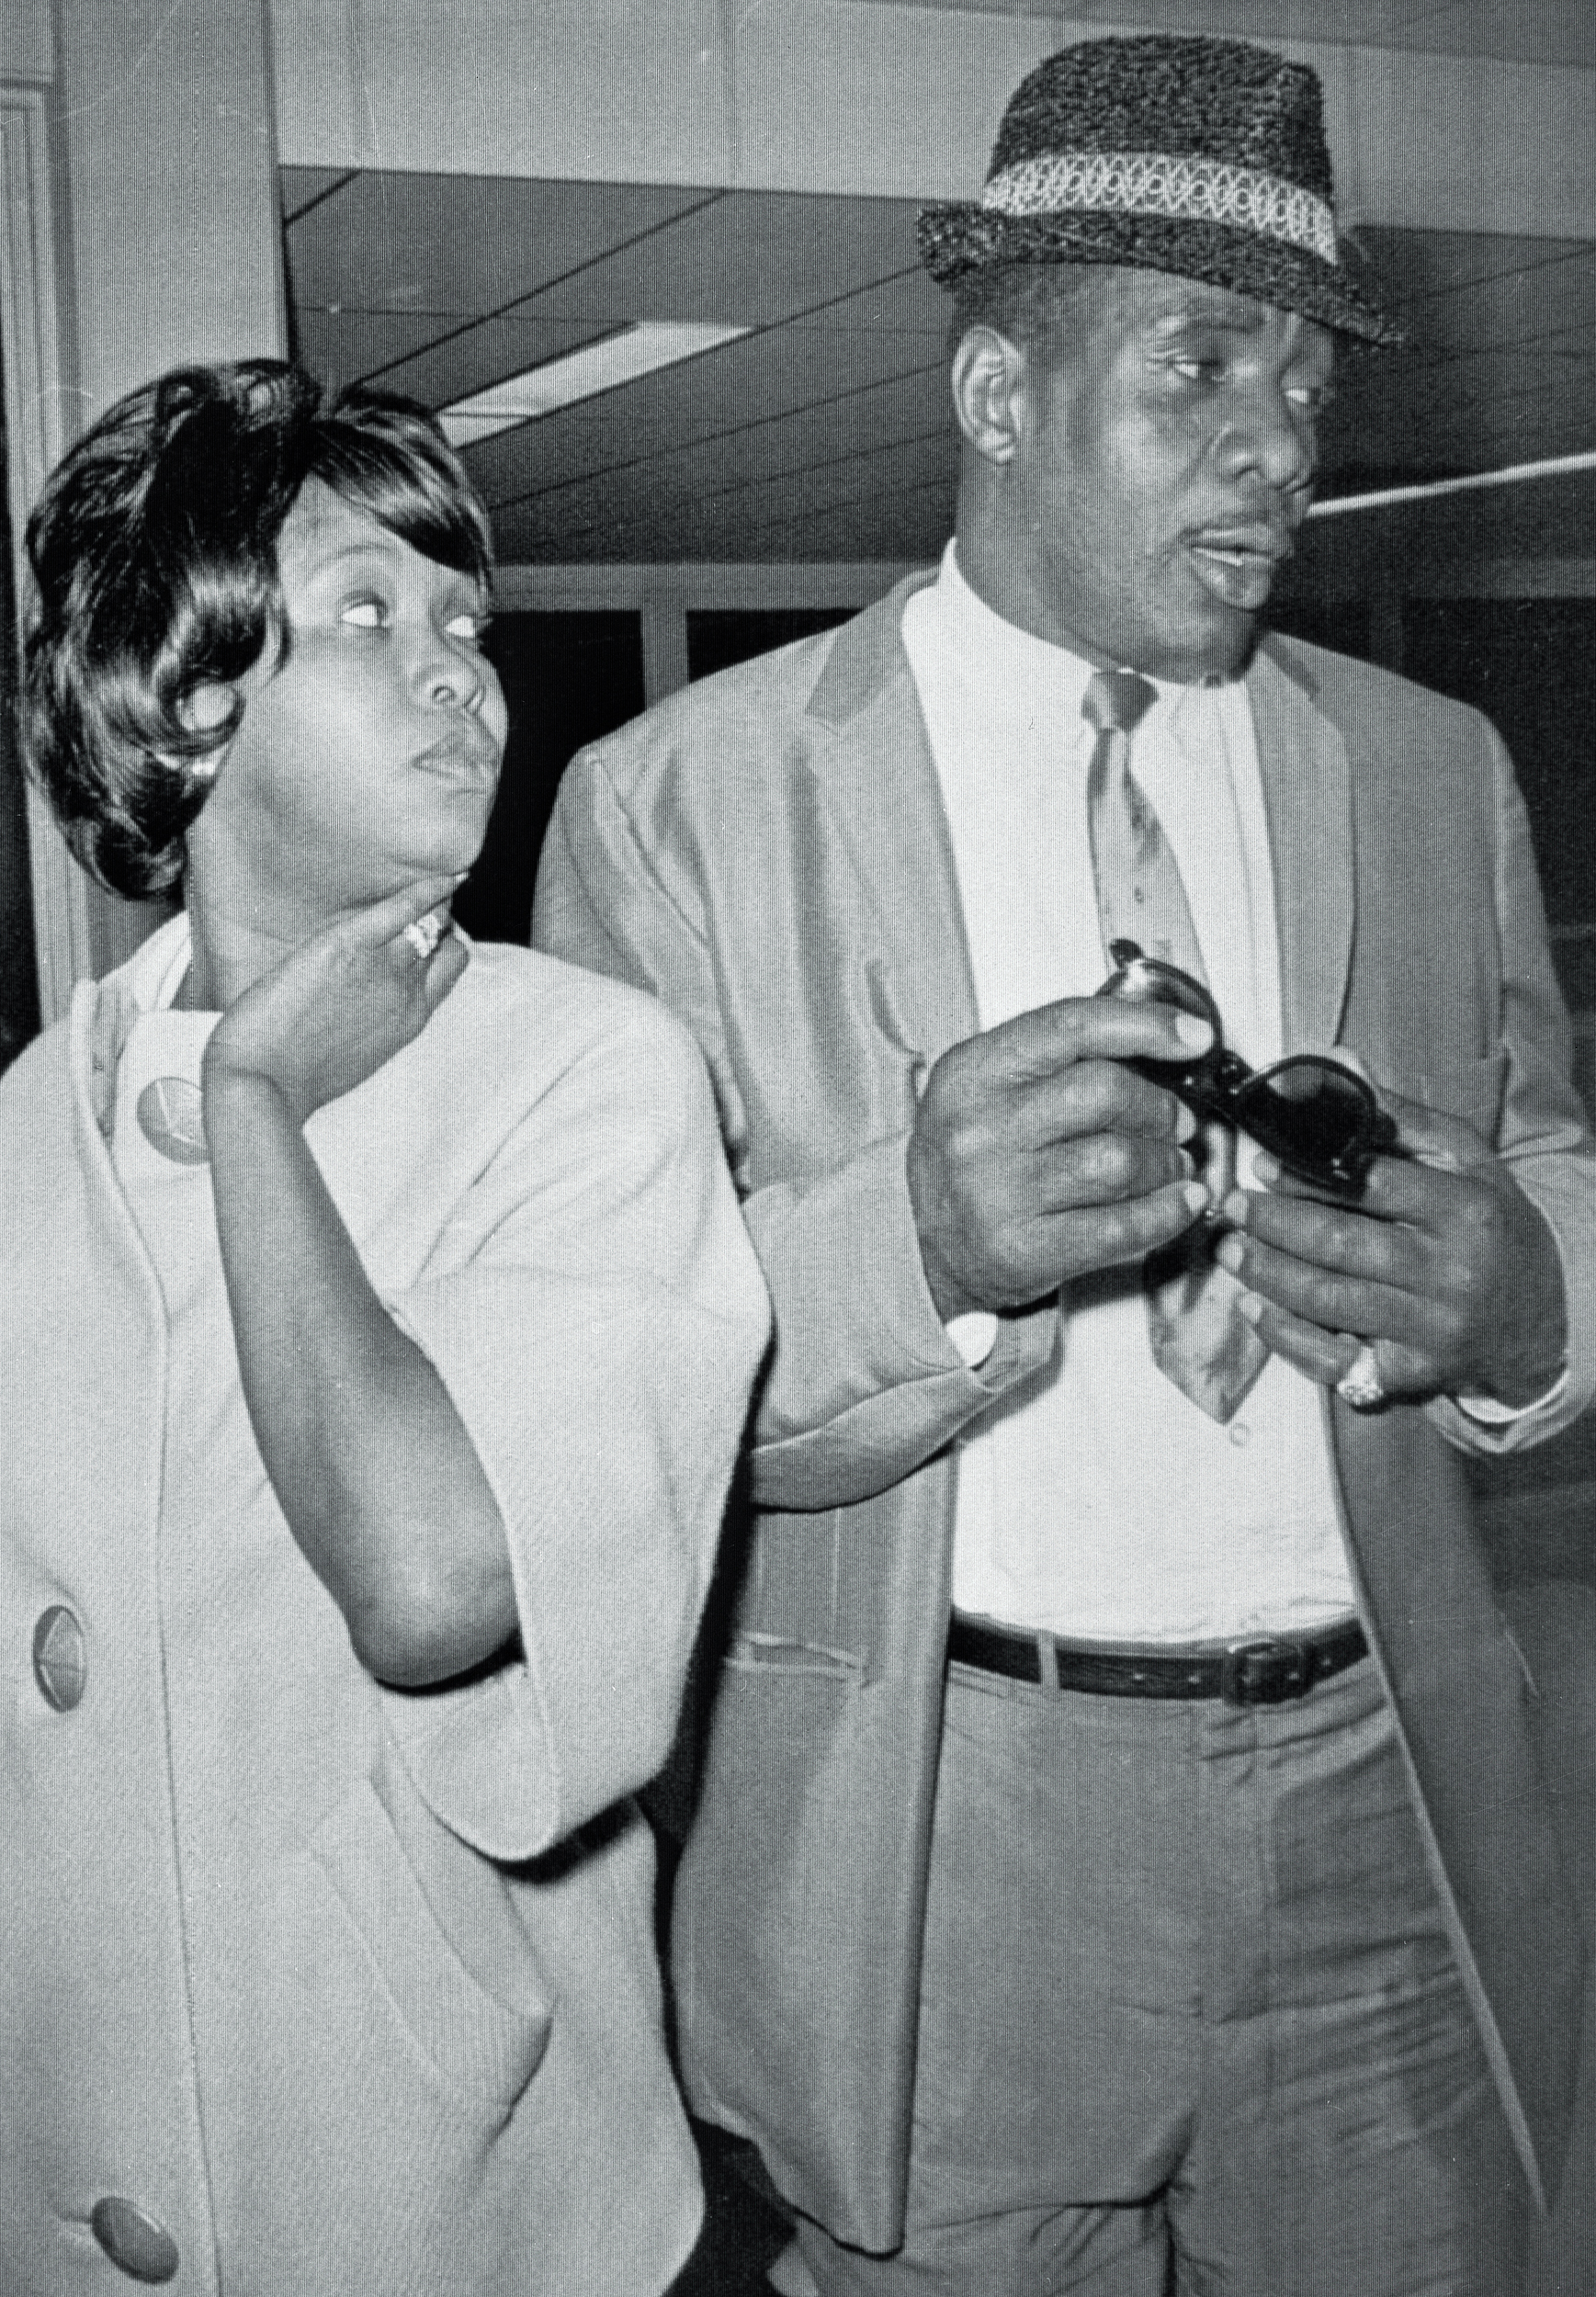 Sonny Liston arrives in Denver late with his wife, Geraldine.